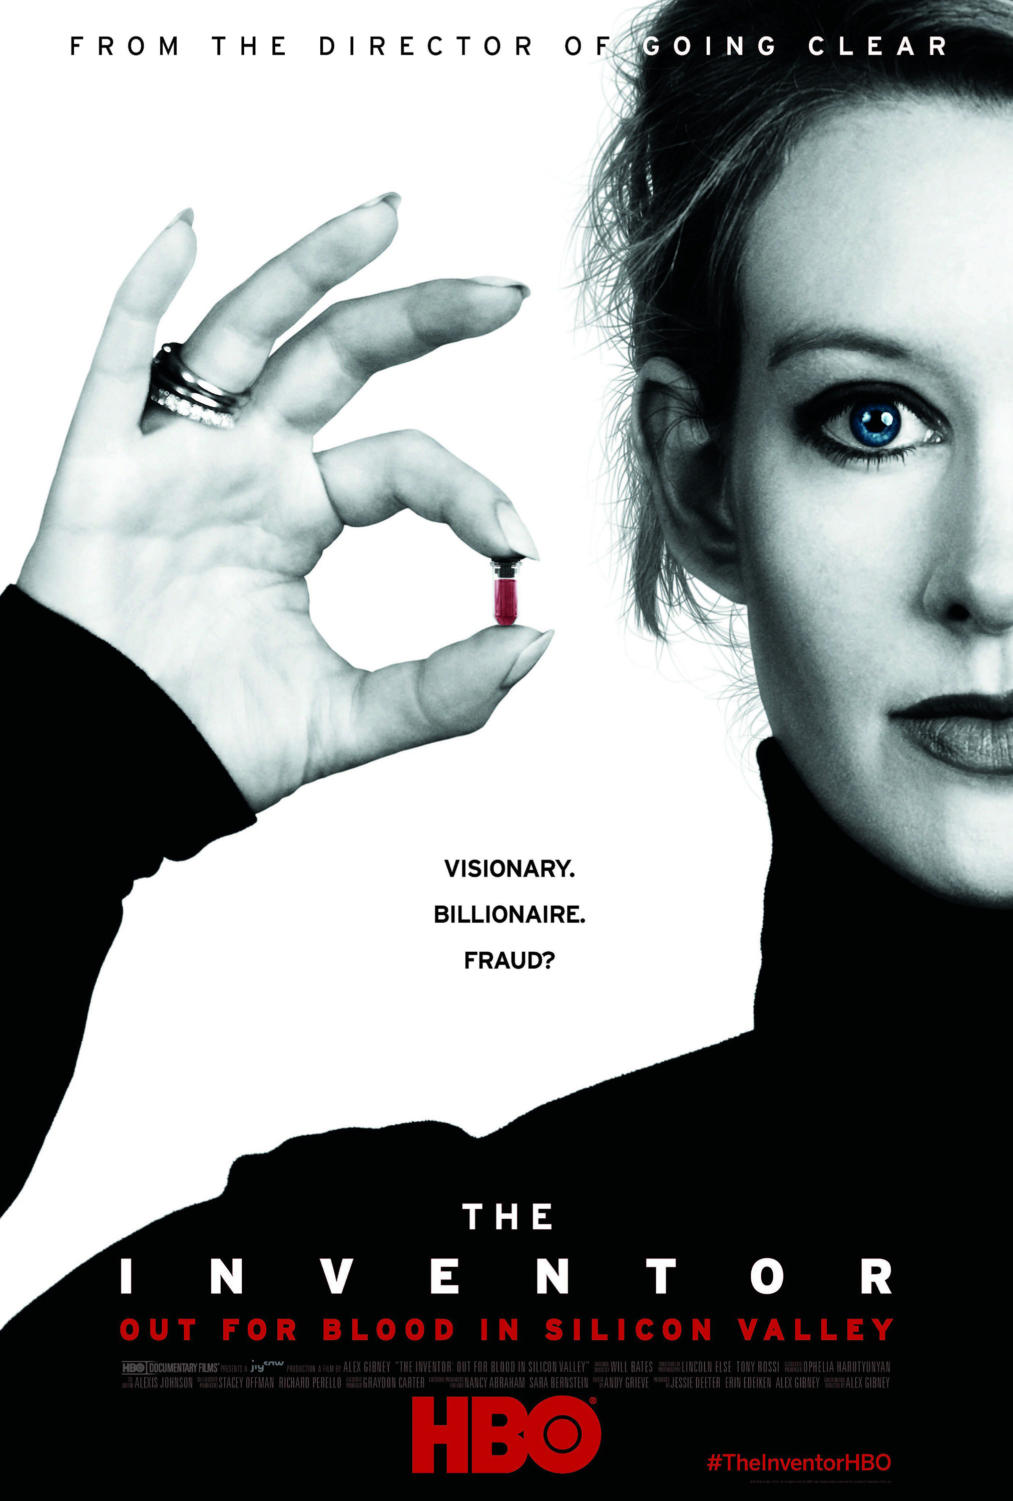 The story of Theranos, a multi-billion dollar tech company, its founder Elizabeth Holmes, the youngest self-made female billionaire, and the massive fraud that collapsed the company.